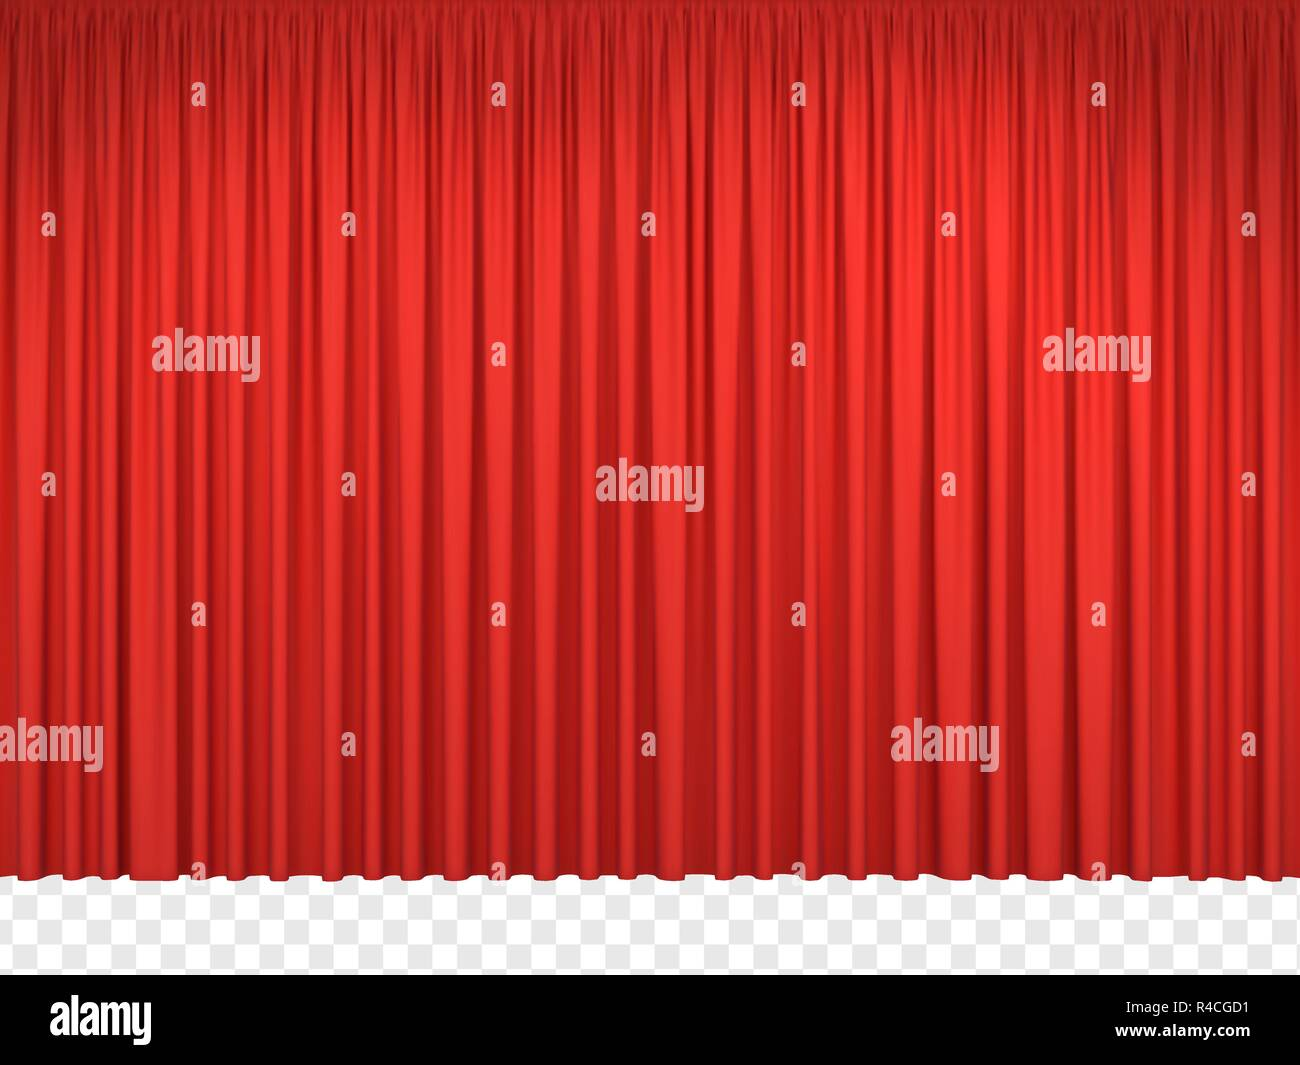 Red stage curtains. Realistic closed theatrical cinema drapes for interior performance event on theatrical stage or in concert hall. Vector illustration - Stock Vector